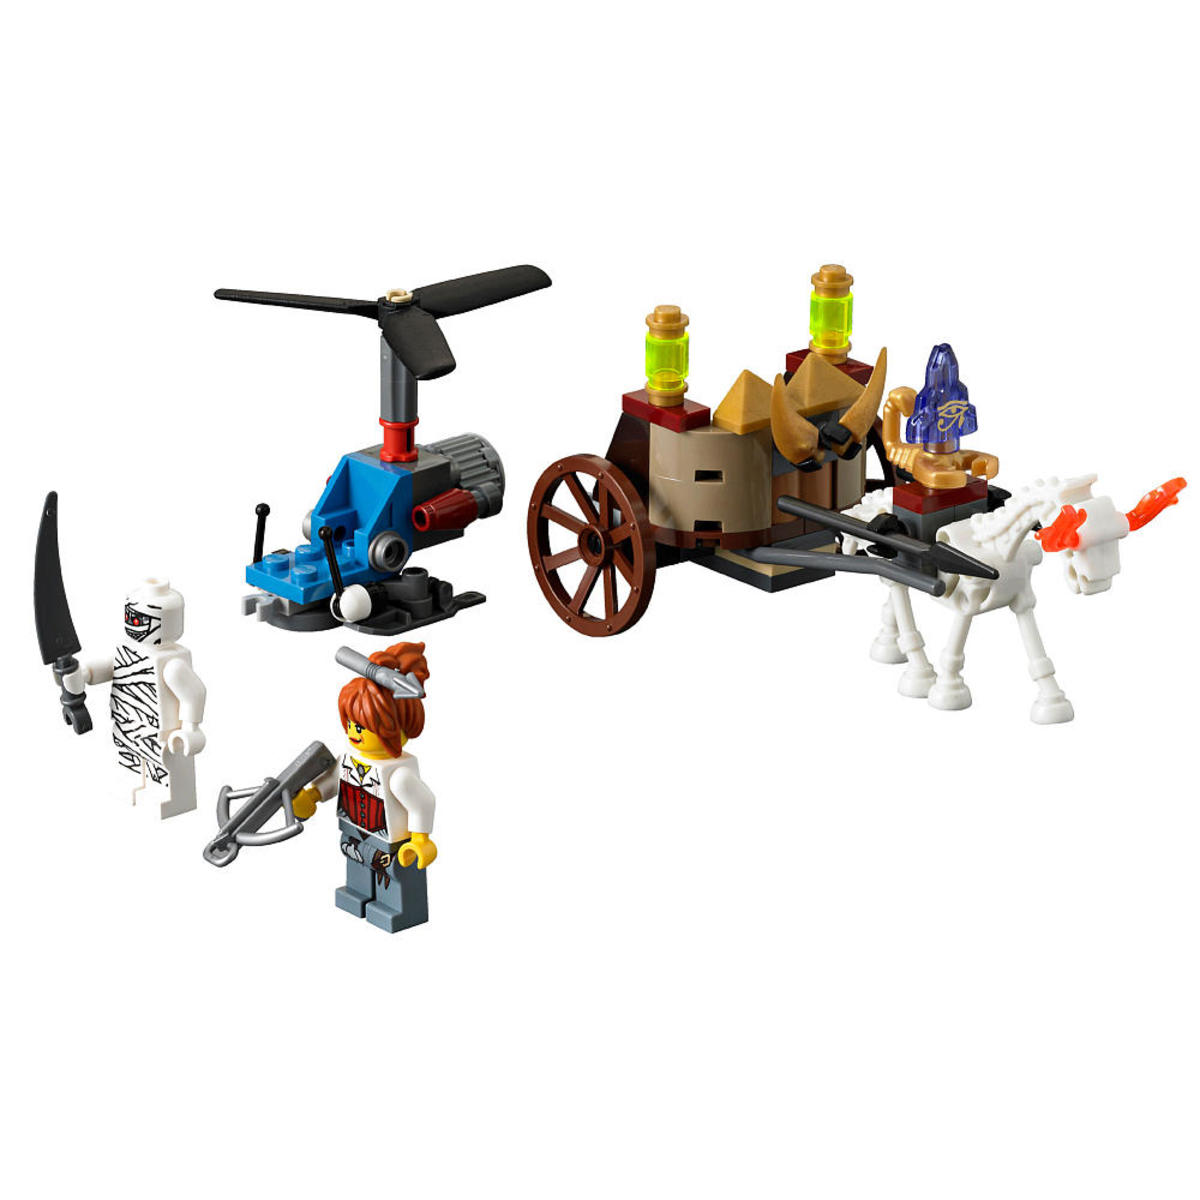 LEGO Monster Fighters The Mummy 9462 Assembled